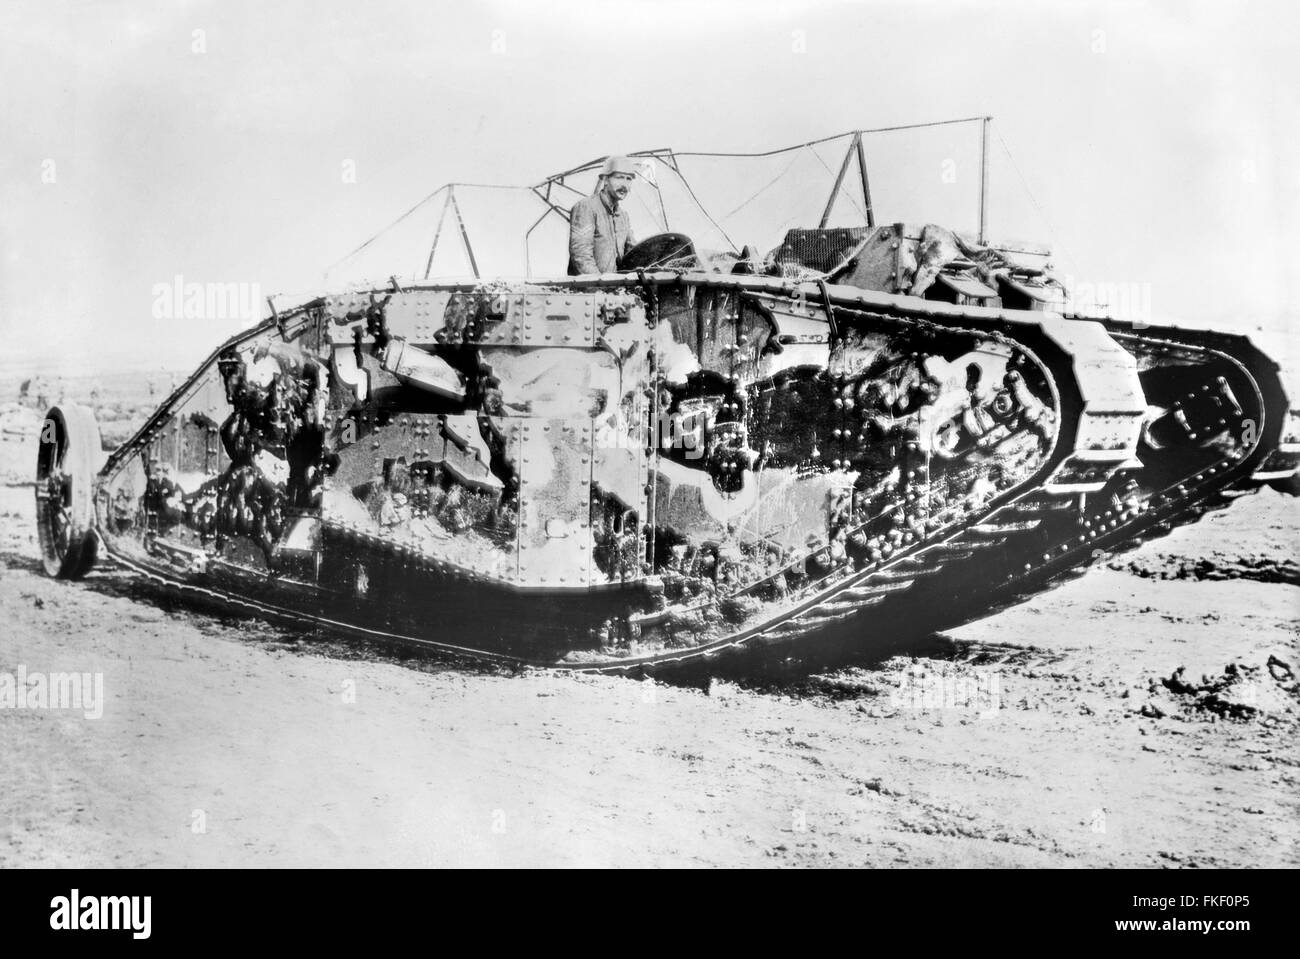 British tank at the Battle of Flers-Courcelette in the Somme, France in World War I. Photo from Bain News Service, - Stock Image